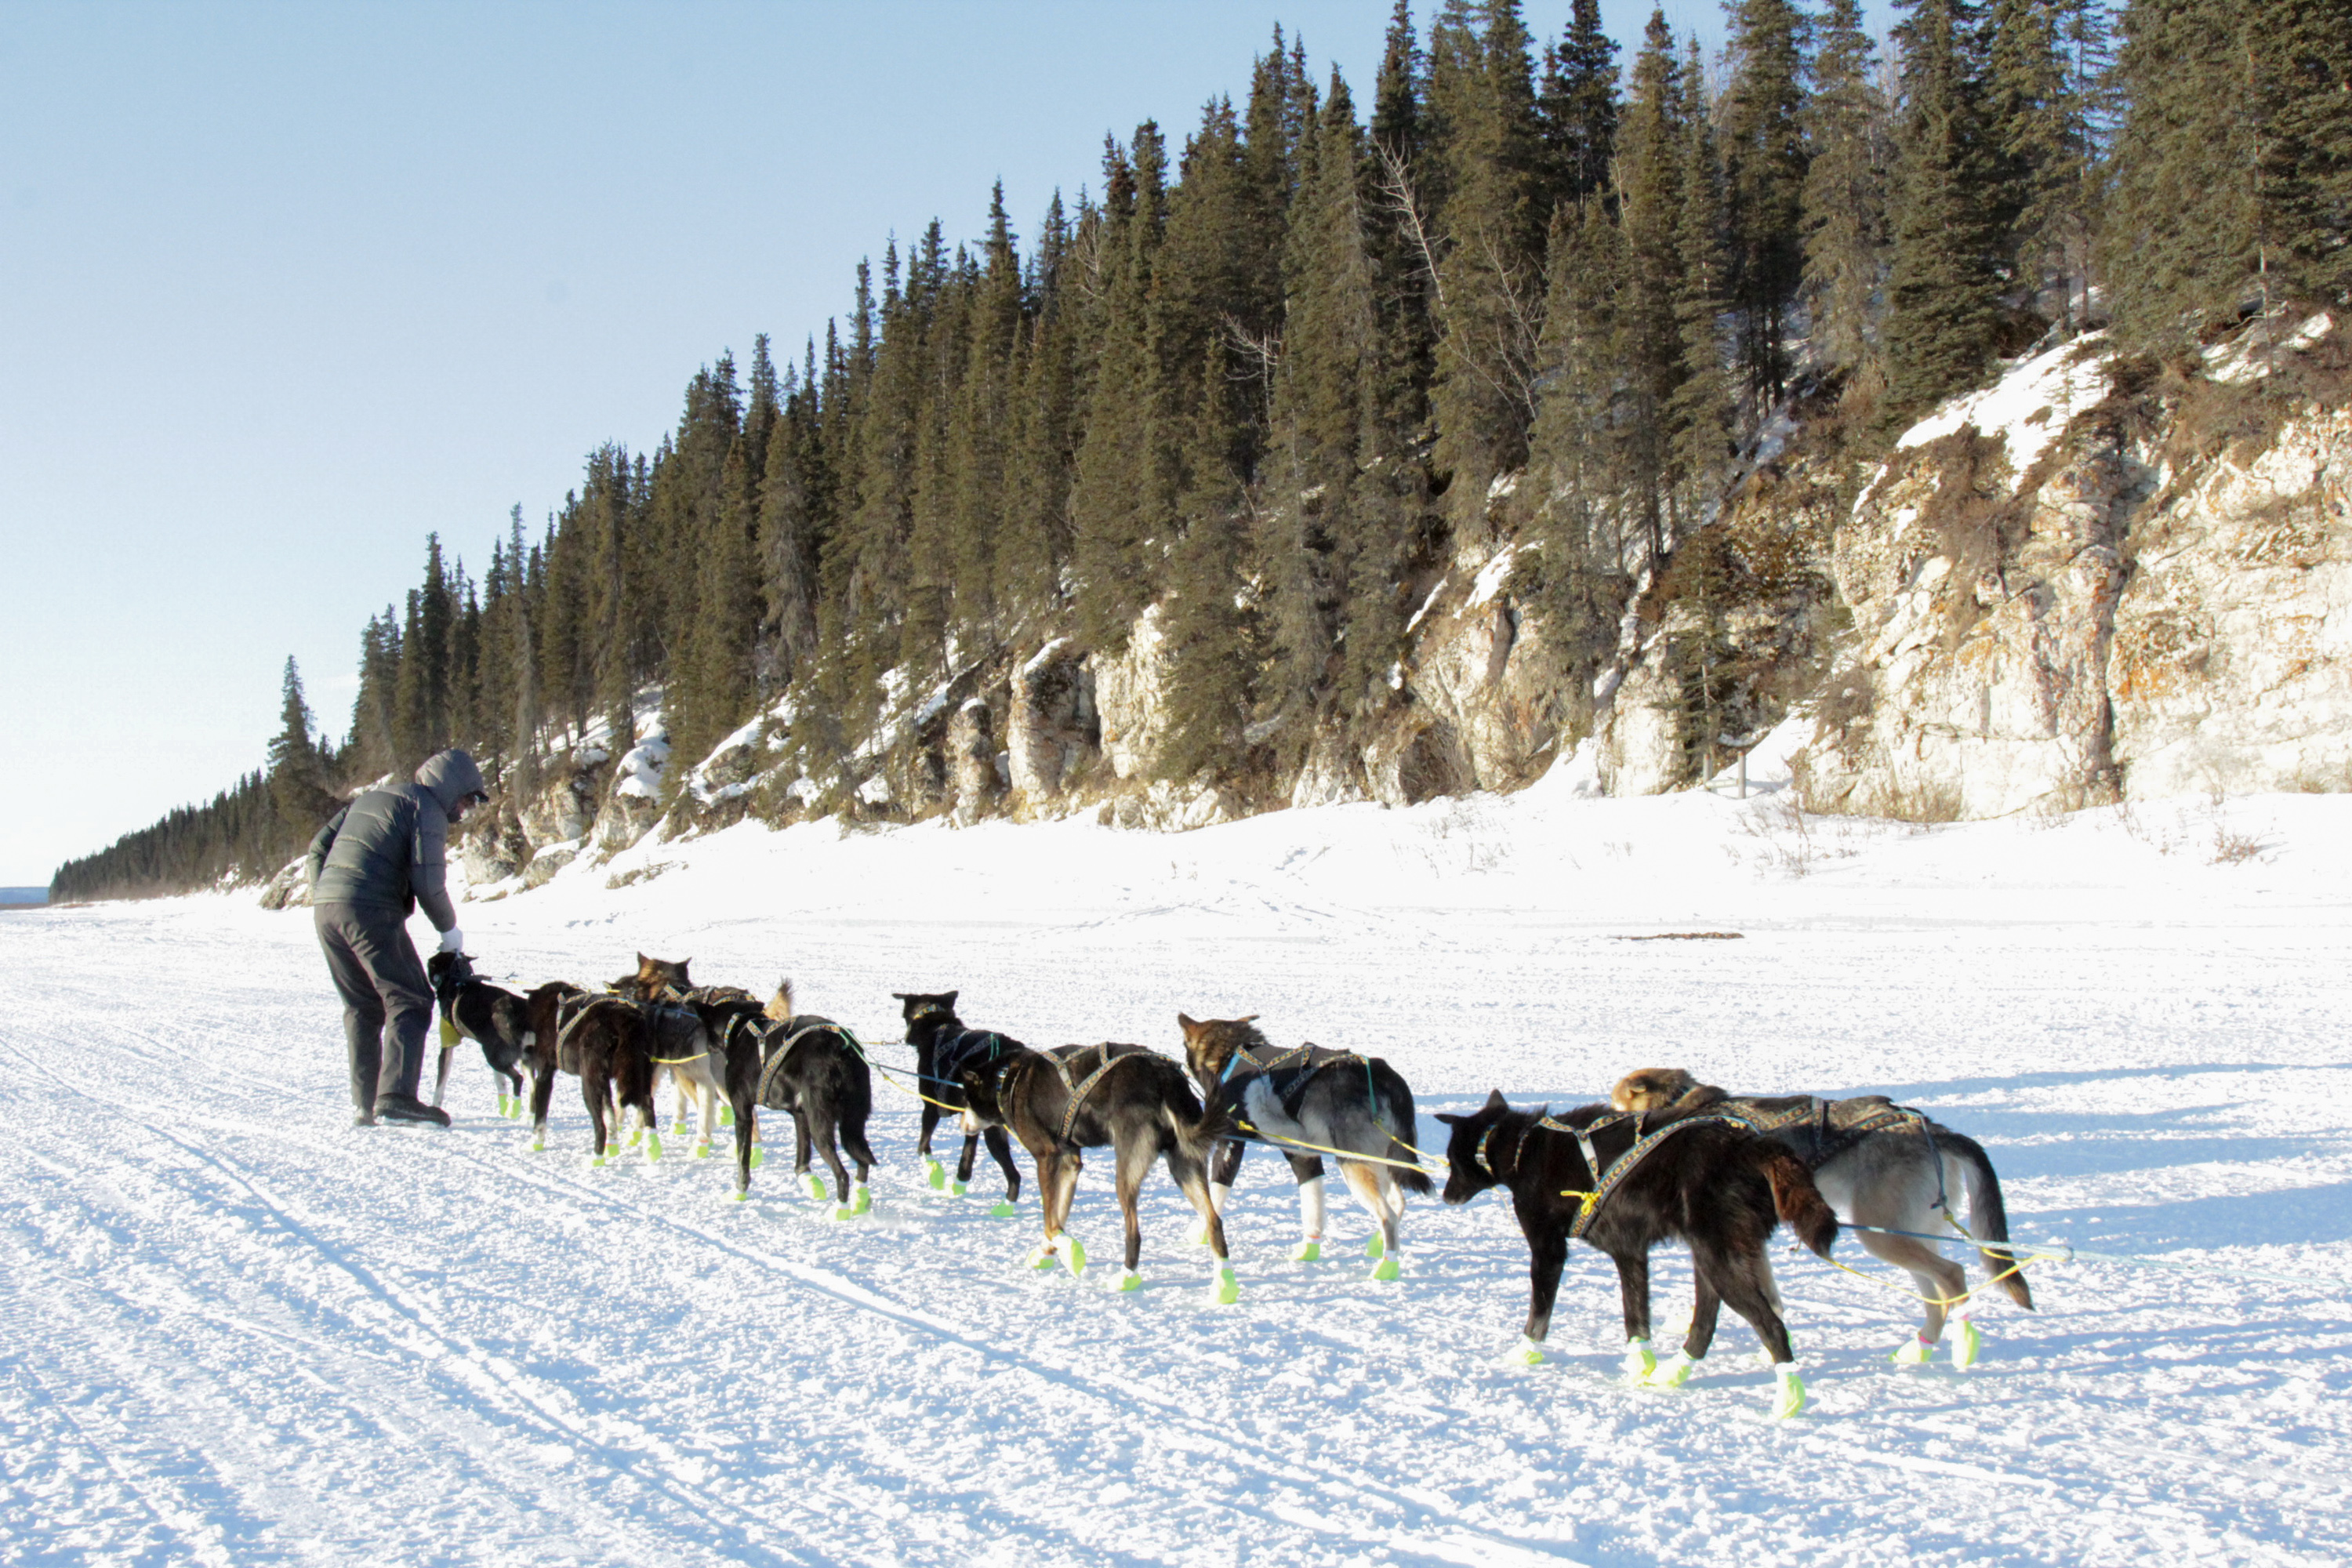 History Have As Many Teams Finished The 1000 Snow Dog Hd Wiring Harness Sass Says His Competitive Edge Sprinting Alongside Seaveys Got Best Of Ability To